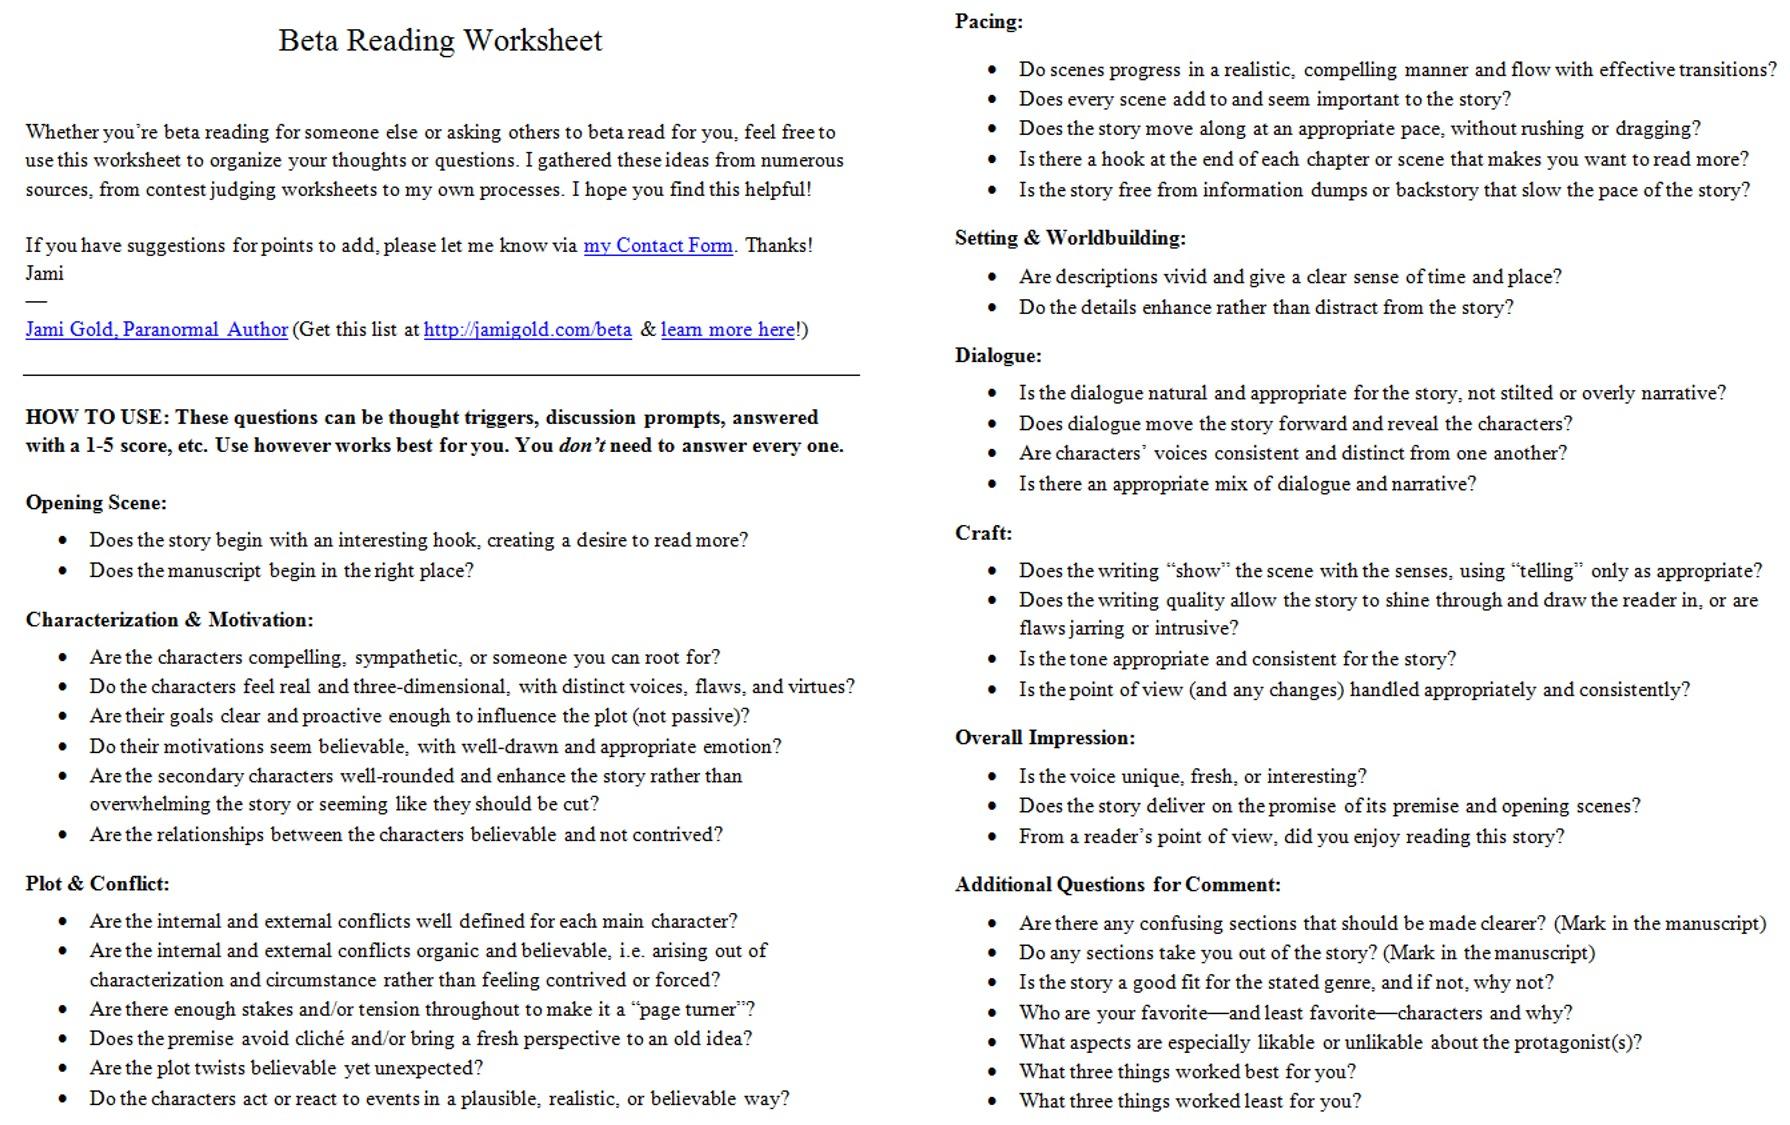 Proatmealus  Picturesque Worksheets For Writers  Jami Gold Paranormal Author With Foxy Screen Shot Of The Twopage Beta Reading Worksheet With Extraordinary School Readiness Worksheets Also Pearson Education Inc Geometry Worksheet Answers In Addition Pythagorean Theorem Worksheets Grade  And Action Verbs Worksheet For Nd Grade As Well As Math Printable Worksheets For Nd Grade Additionally Worksheets For Collective Nouns From Jamigoldcom With Proatmealus  Foxy Worksheets For Writers  Jami Gold Paranormal Author With Extraordinary Screen Shot Of The Twopage Beta Reading Worksheet And Picturesque School Readiness Worksheets Also Pearson Education Inc Geometry Worksheet Answers In Addition Pythagorean Theorem Worksheets Grade  From Jamigoldcom